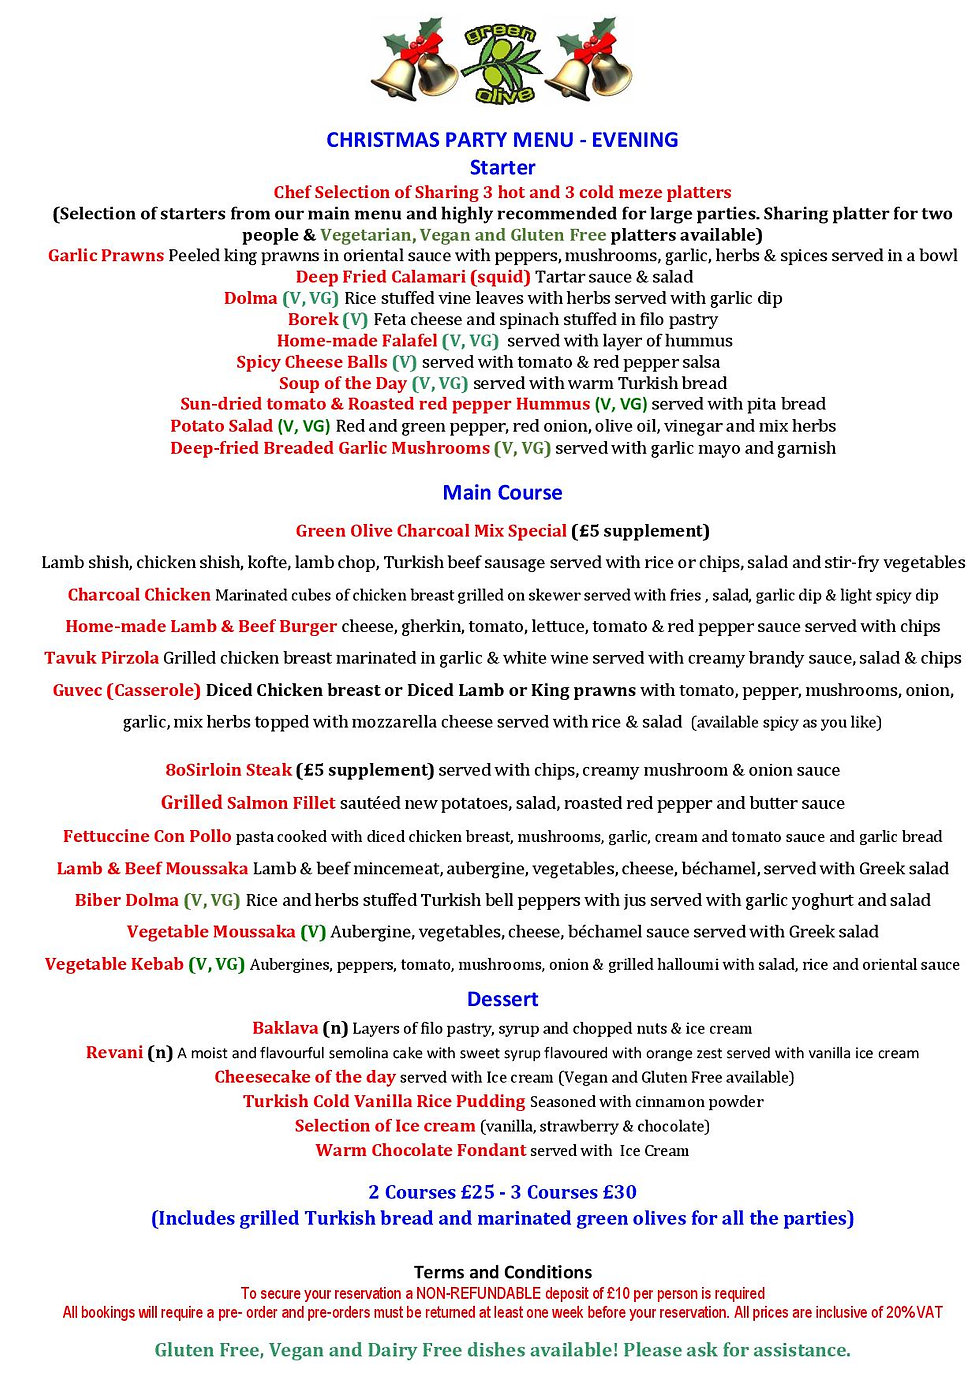 Green Olive Xmas Party Menu - Evening 2021-page-001.jpg